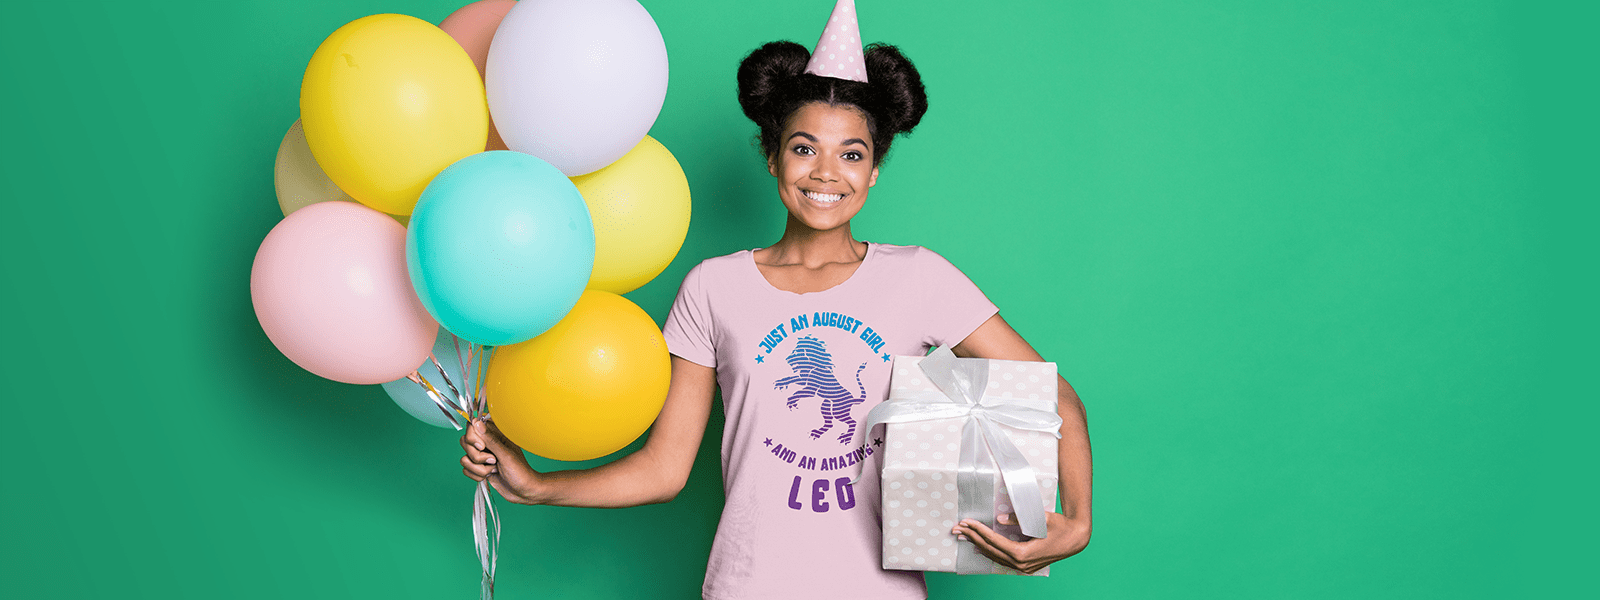 The Essential Guide to the August Zodiac Sign Gifts